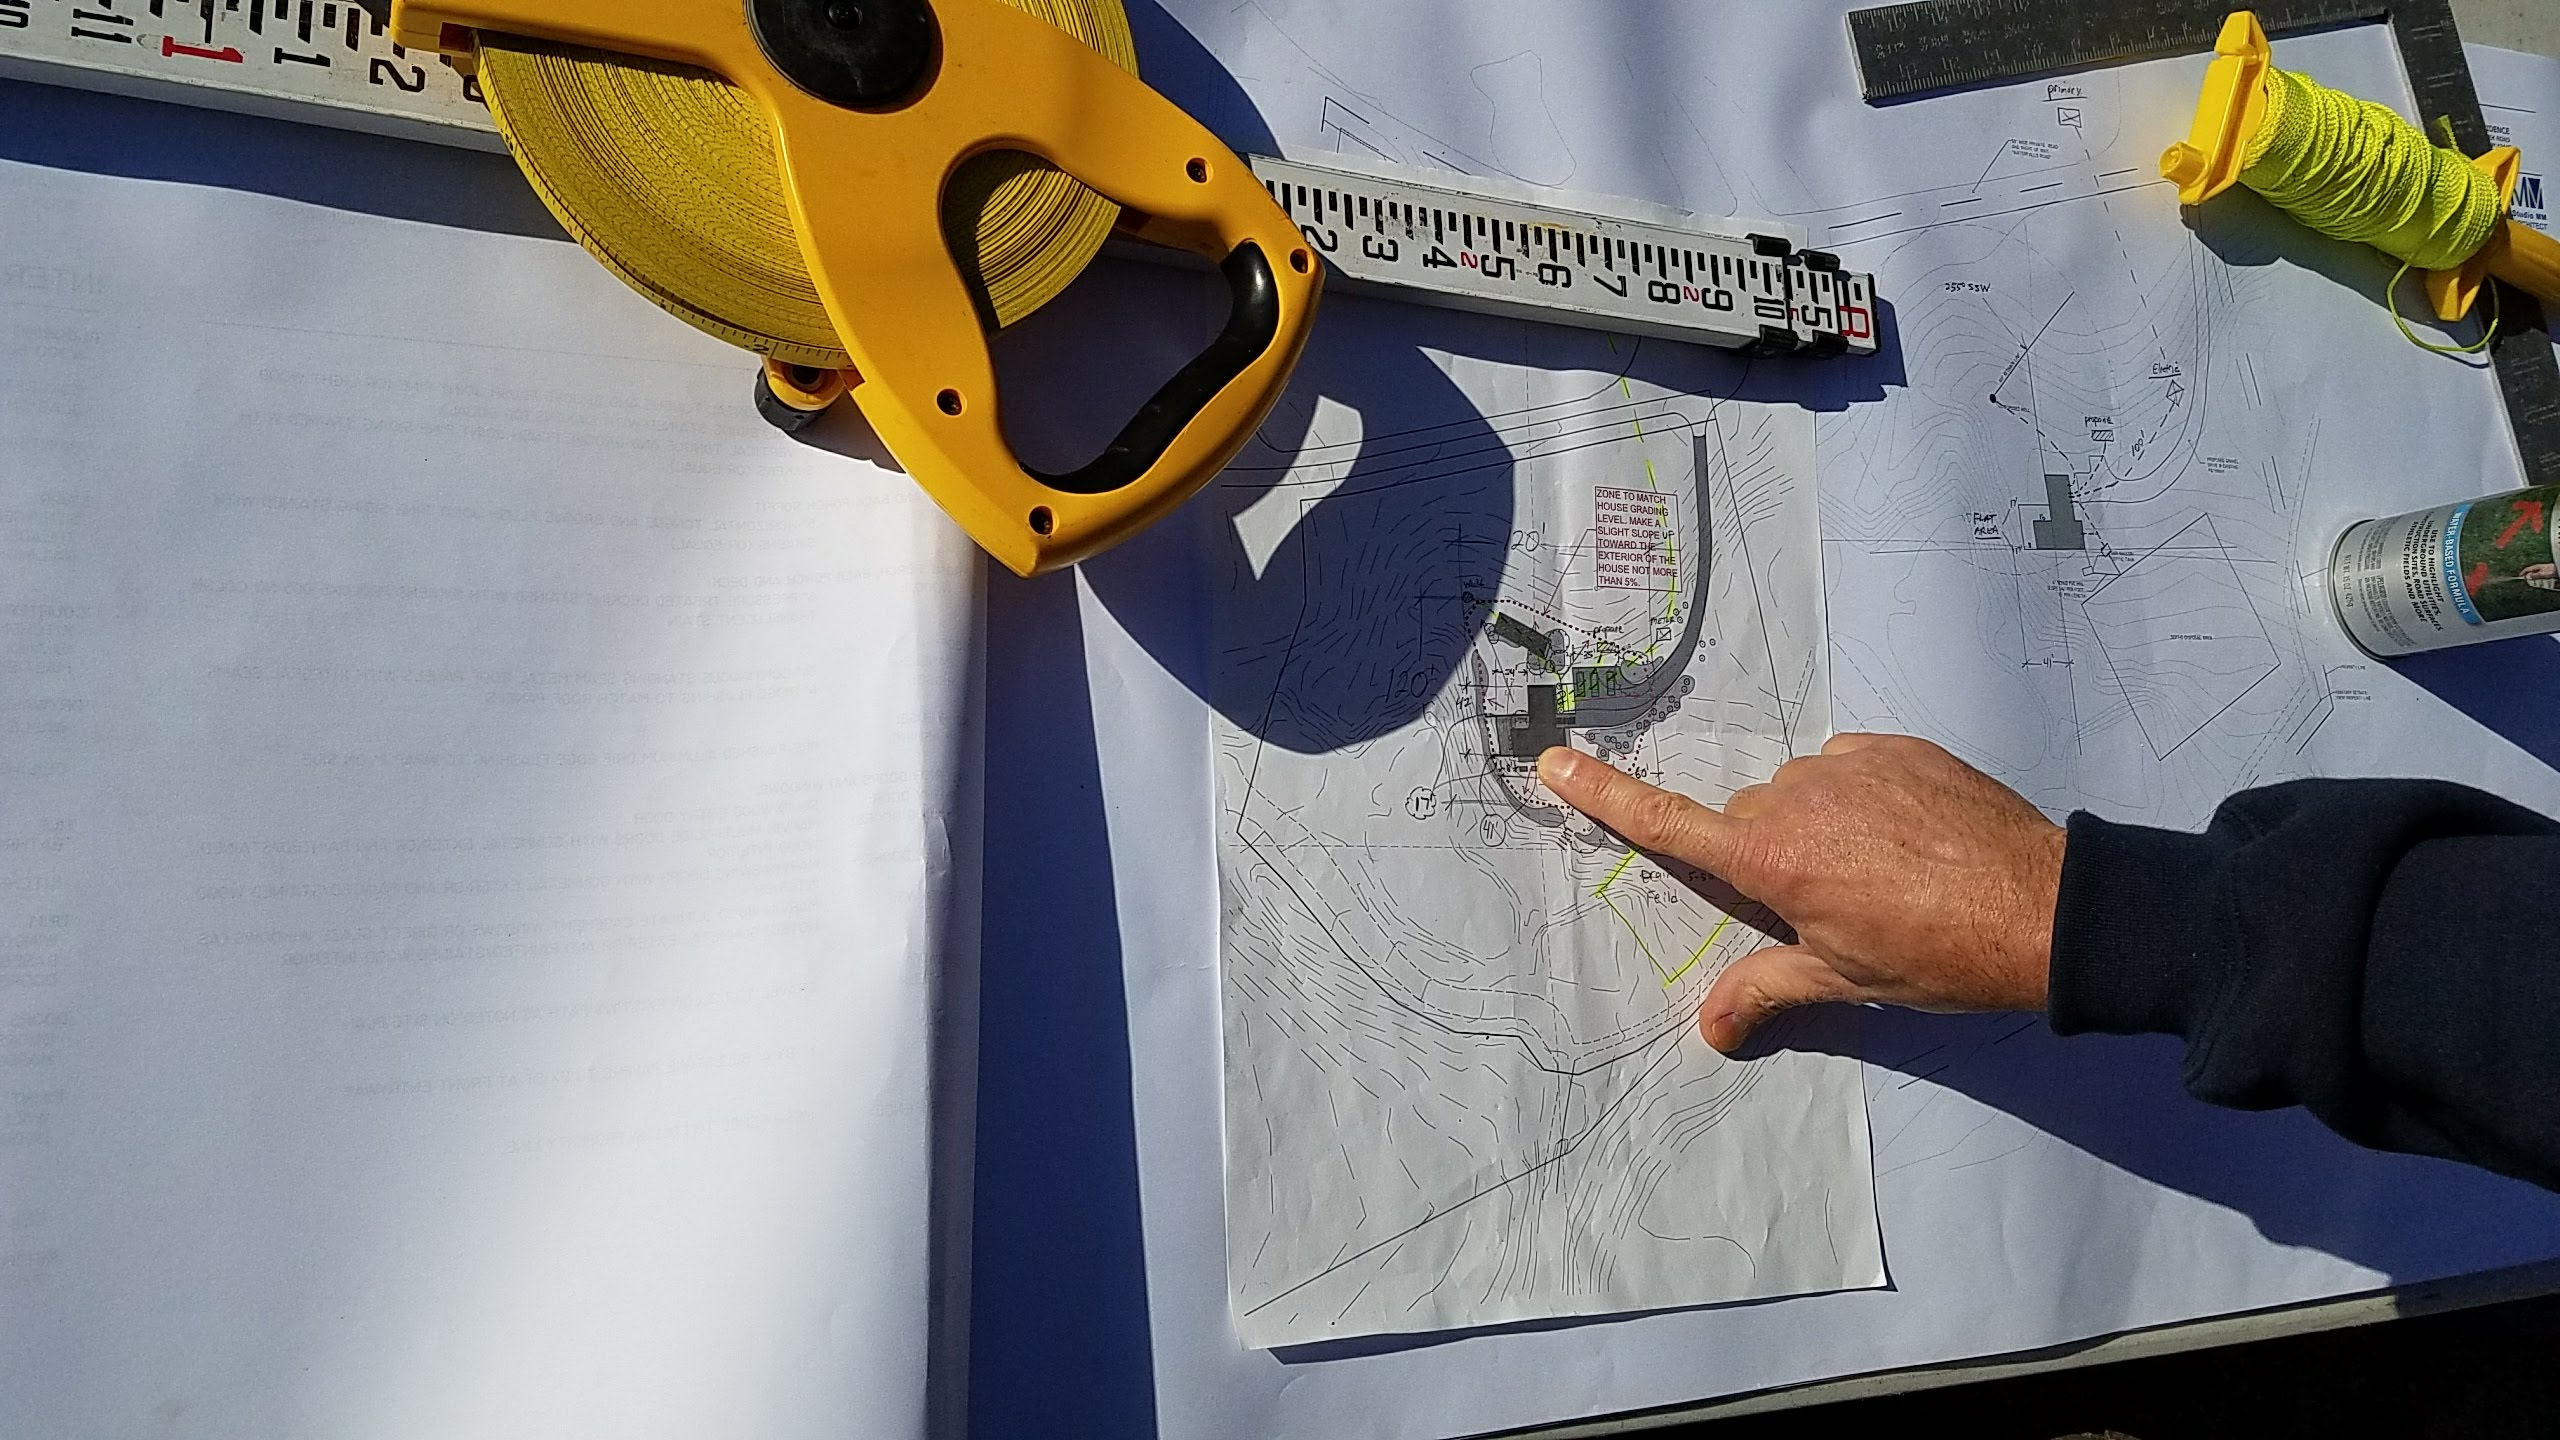 Working with Contractors - Getting Ready to Start Construction